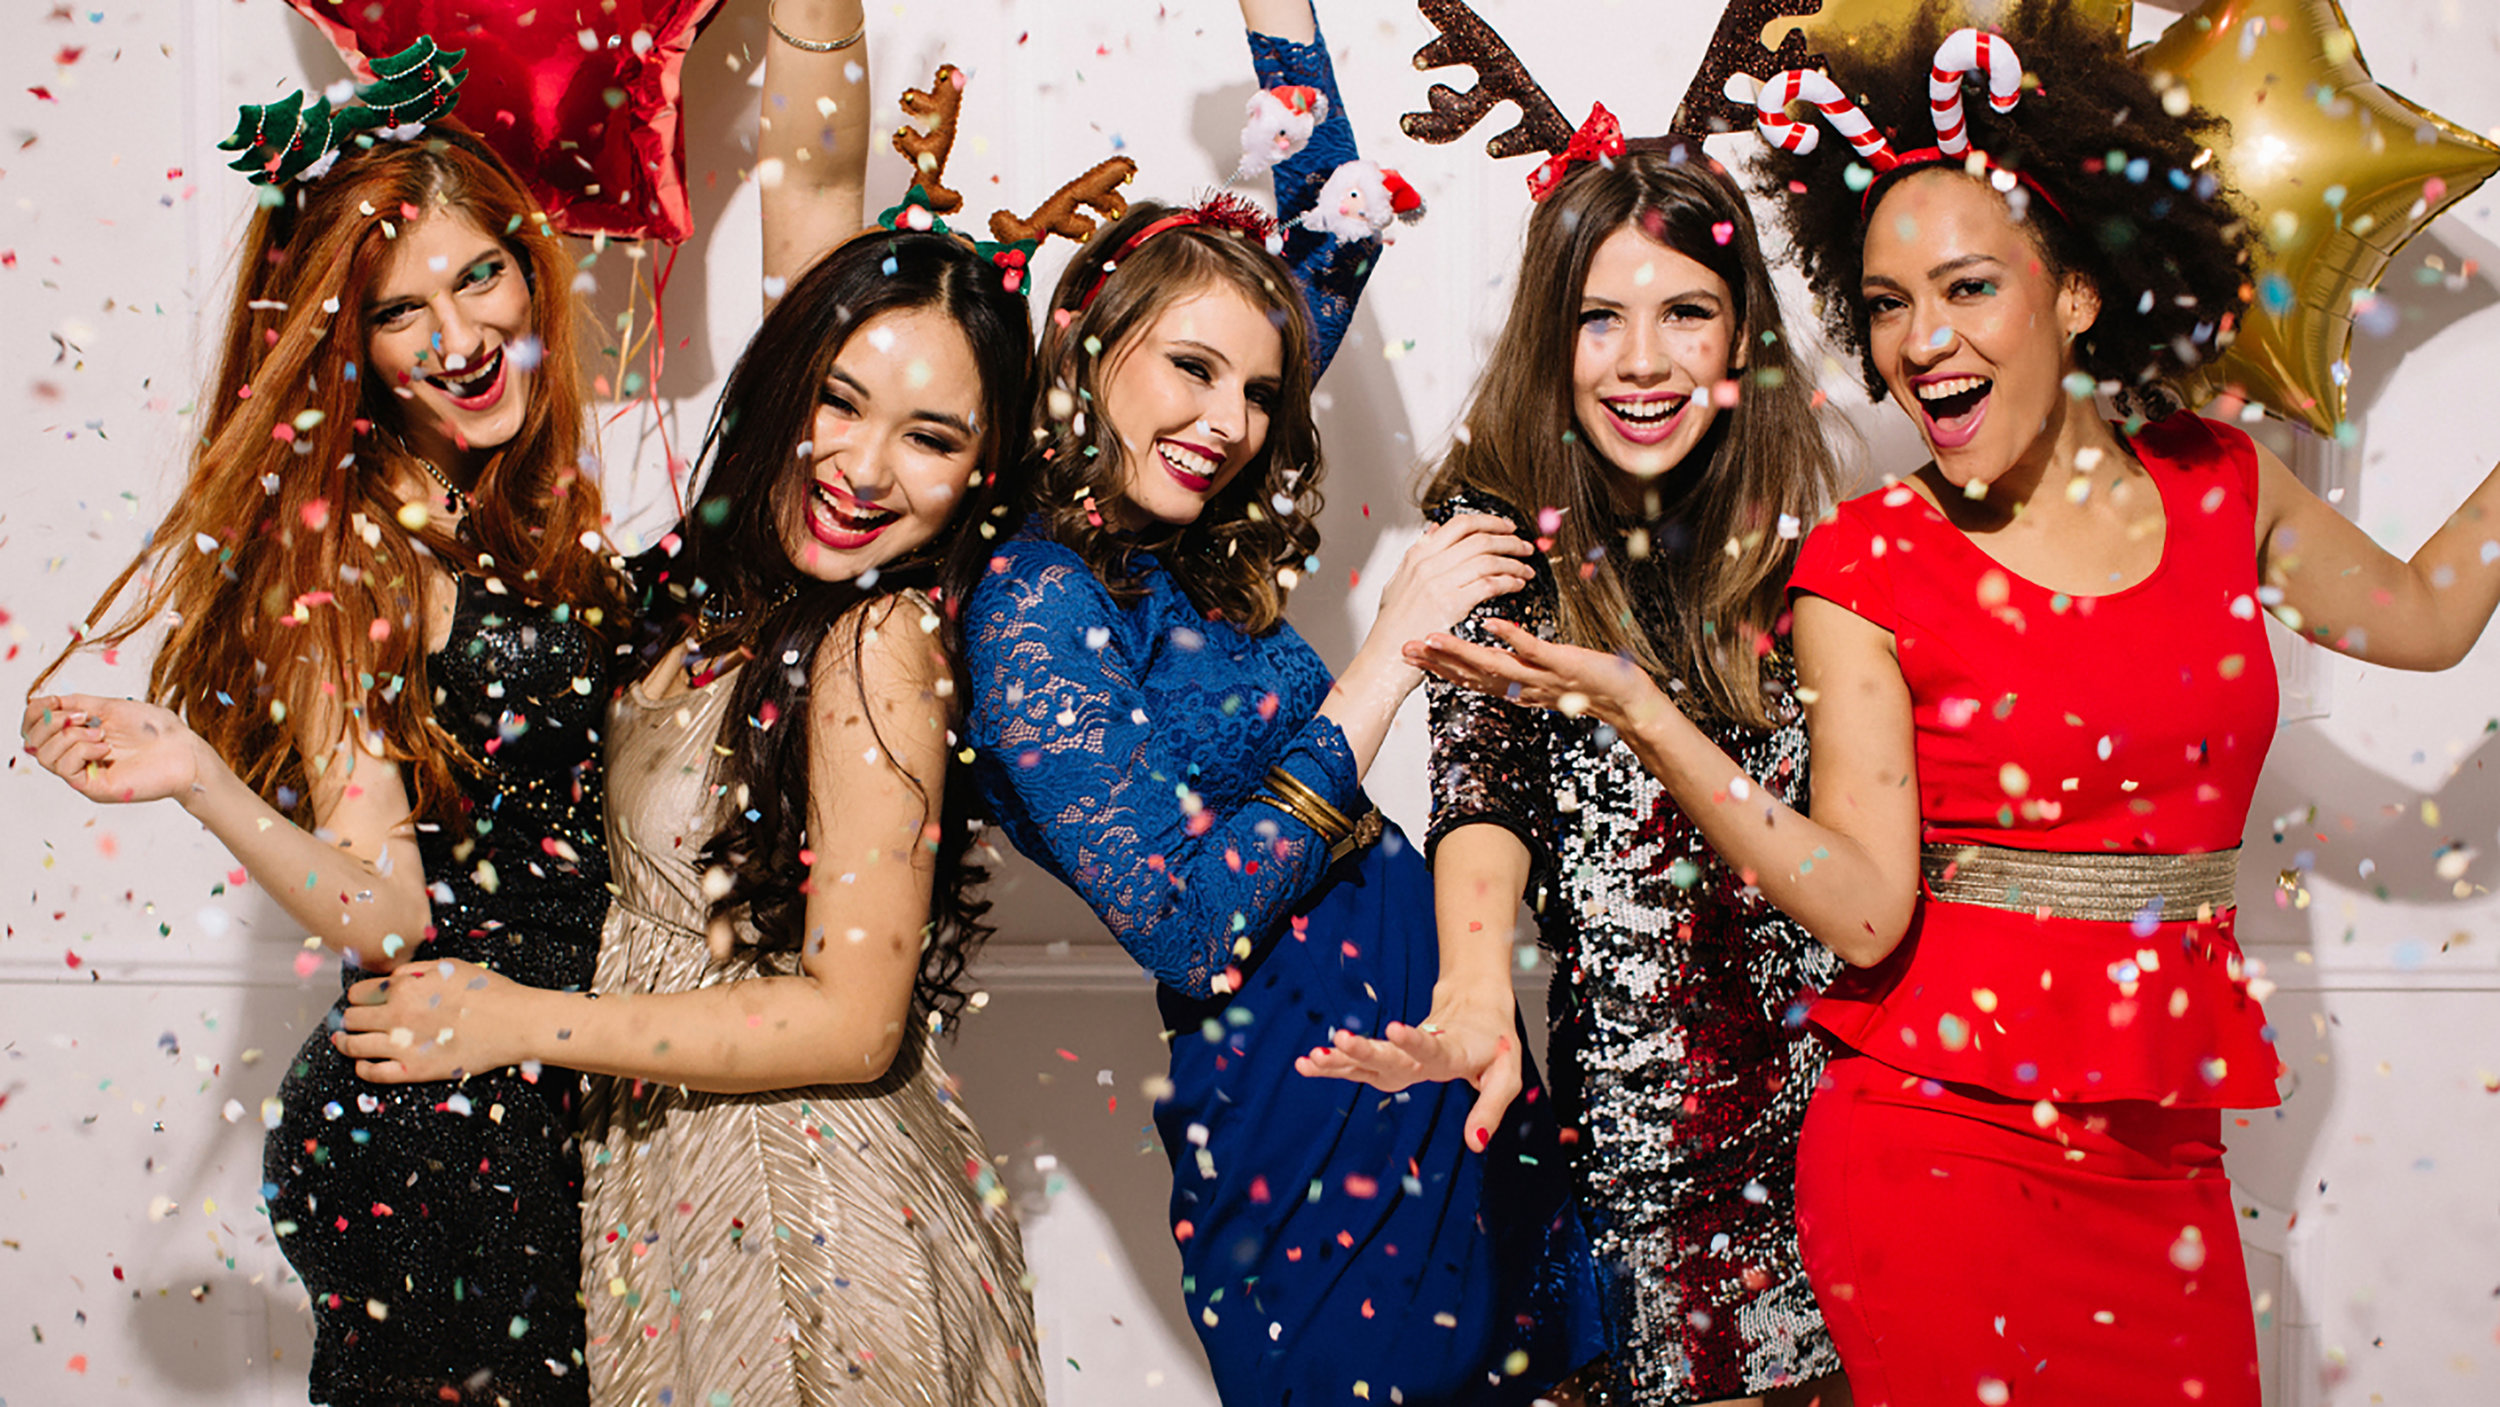 holiday-party-looks-dresses-sparkle-studio-15-2.jpg